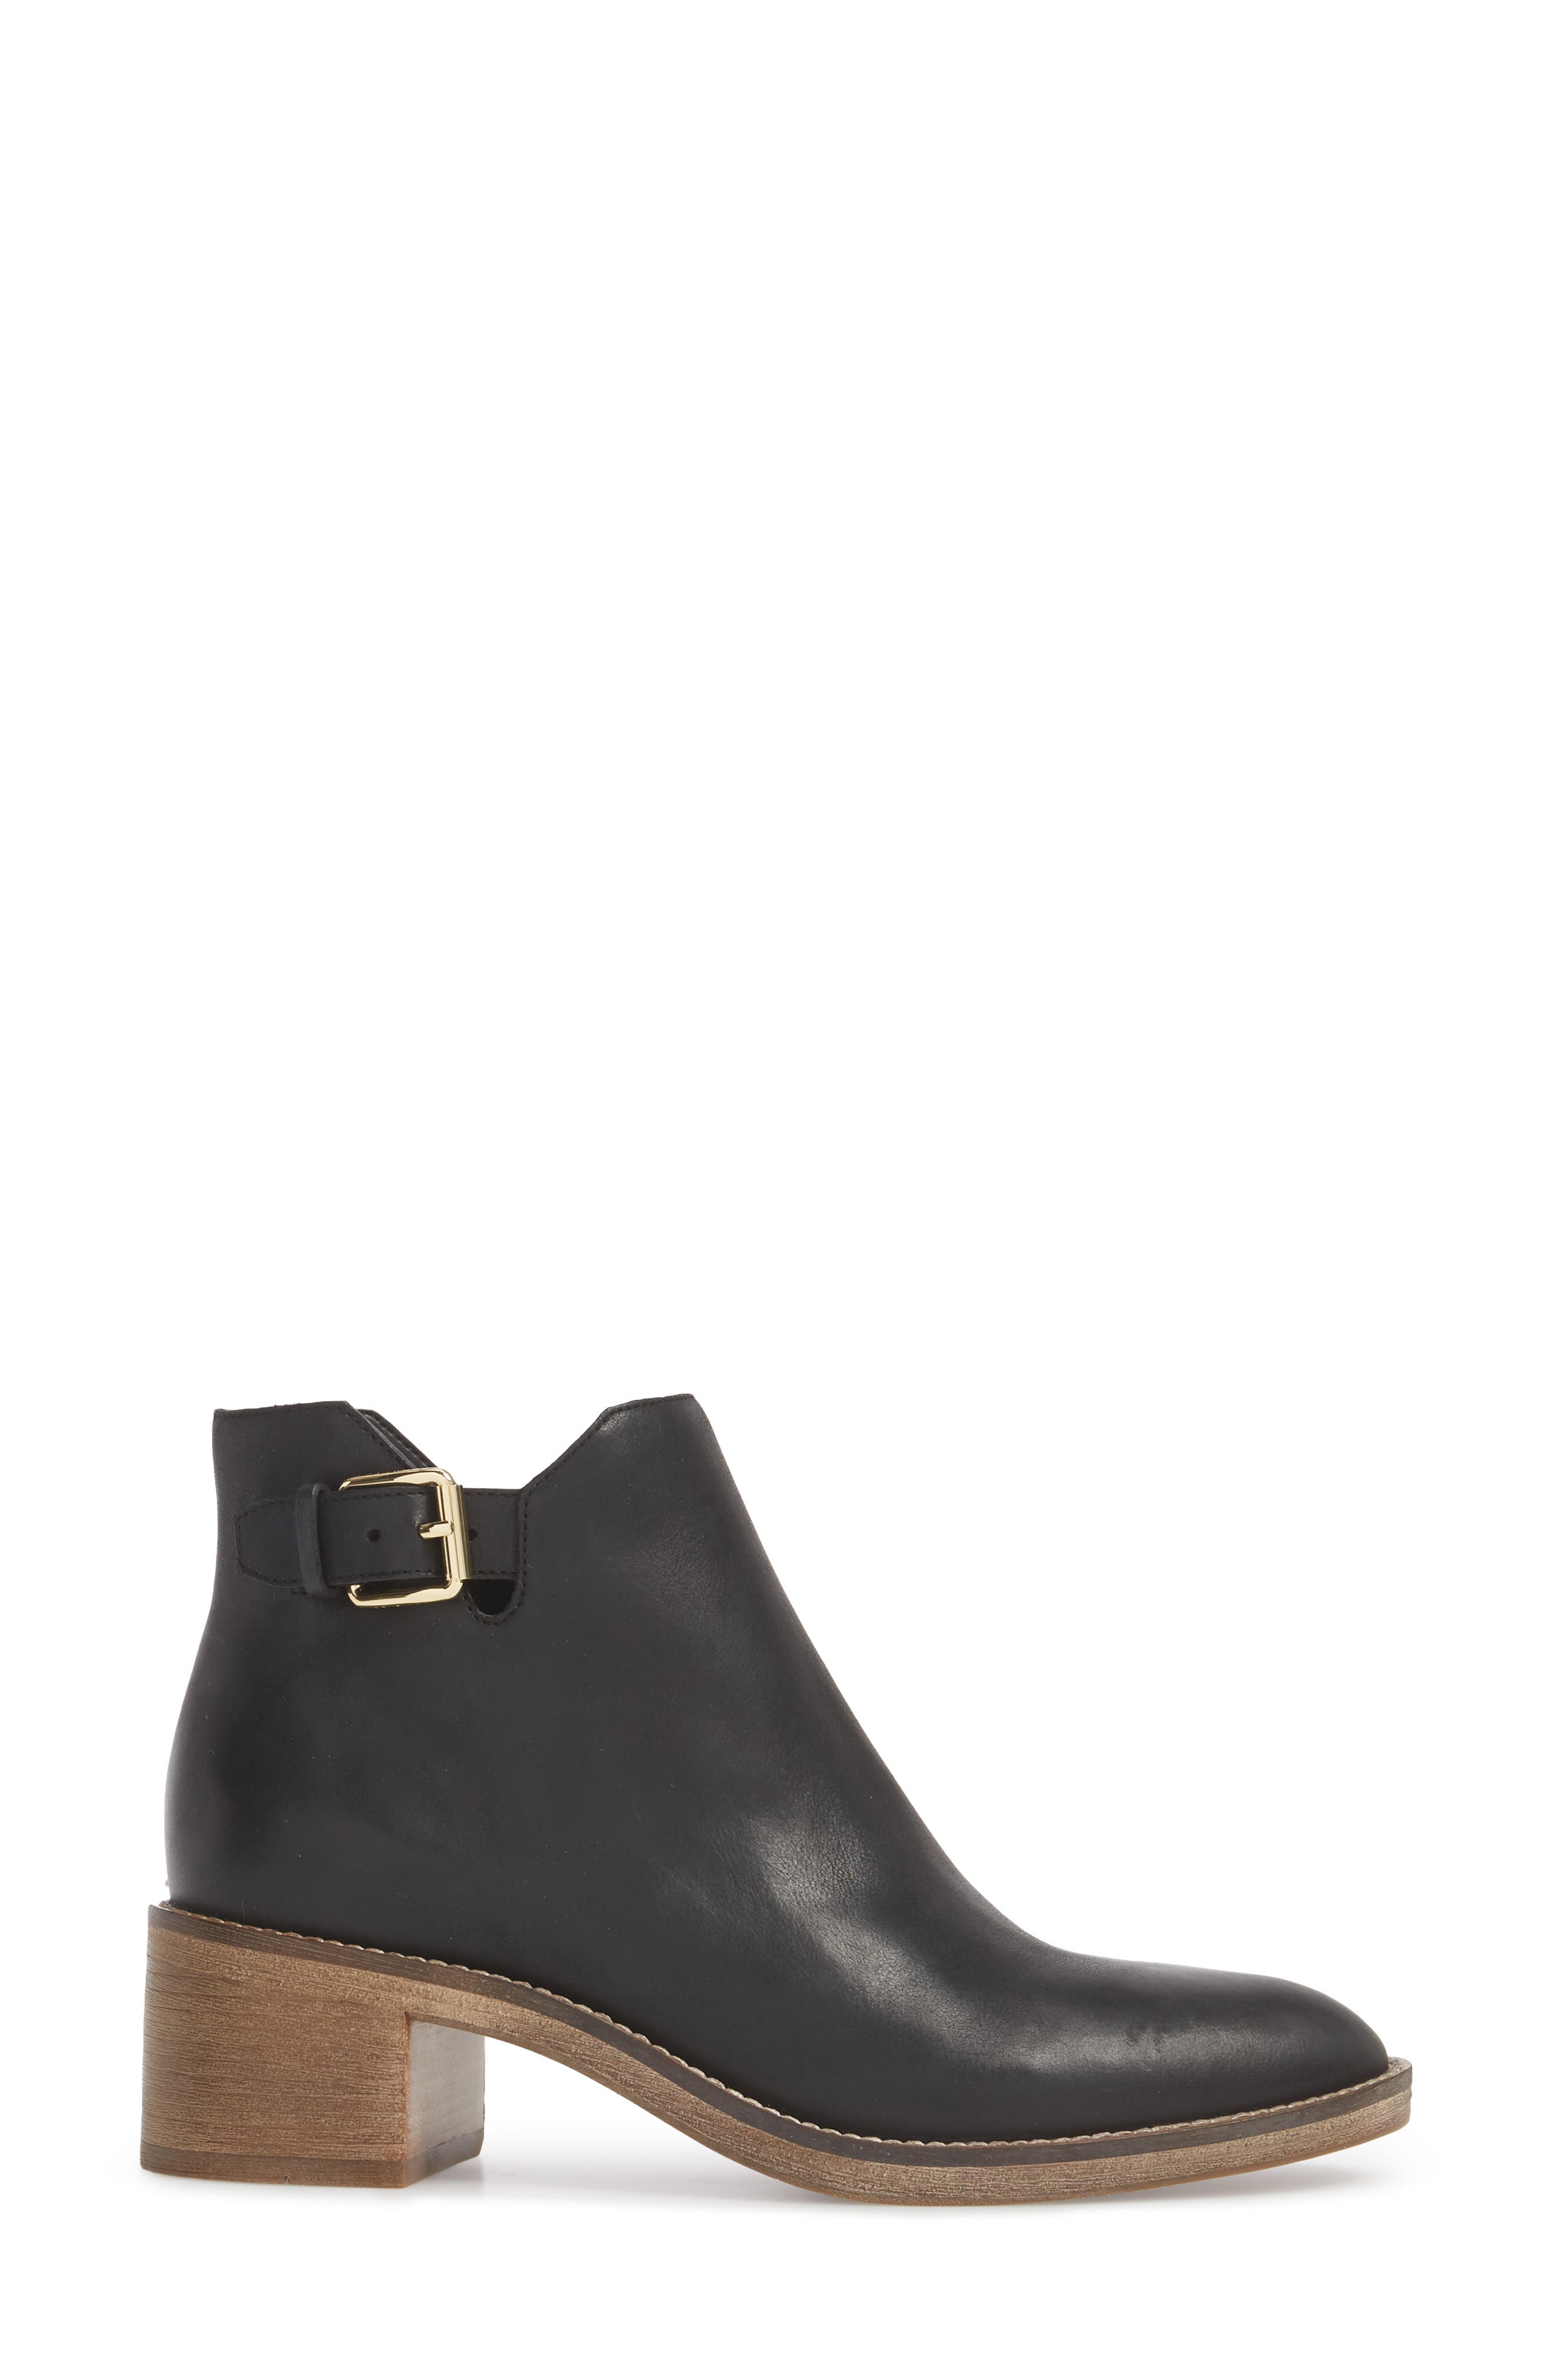 COLE HAAN, Harrington Grand Buckle Bootie, Alternate thumbnail 3, color, BLACK LEATHER